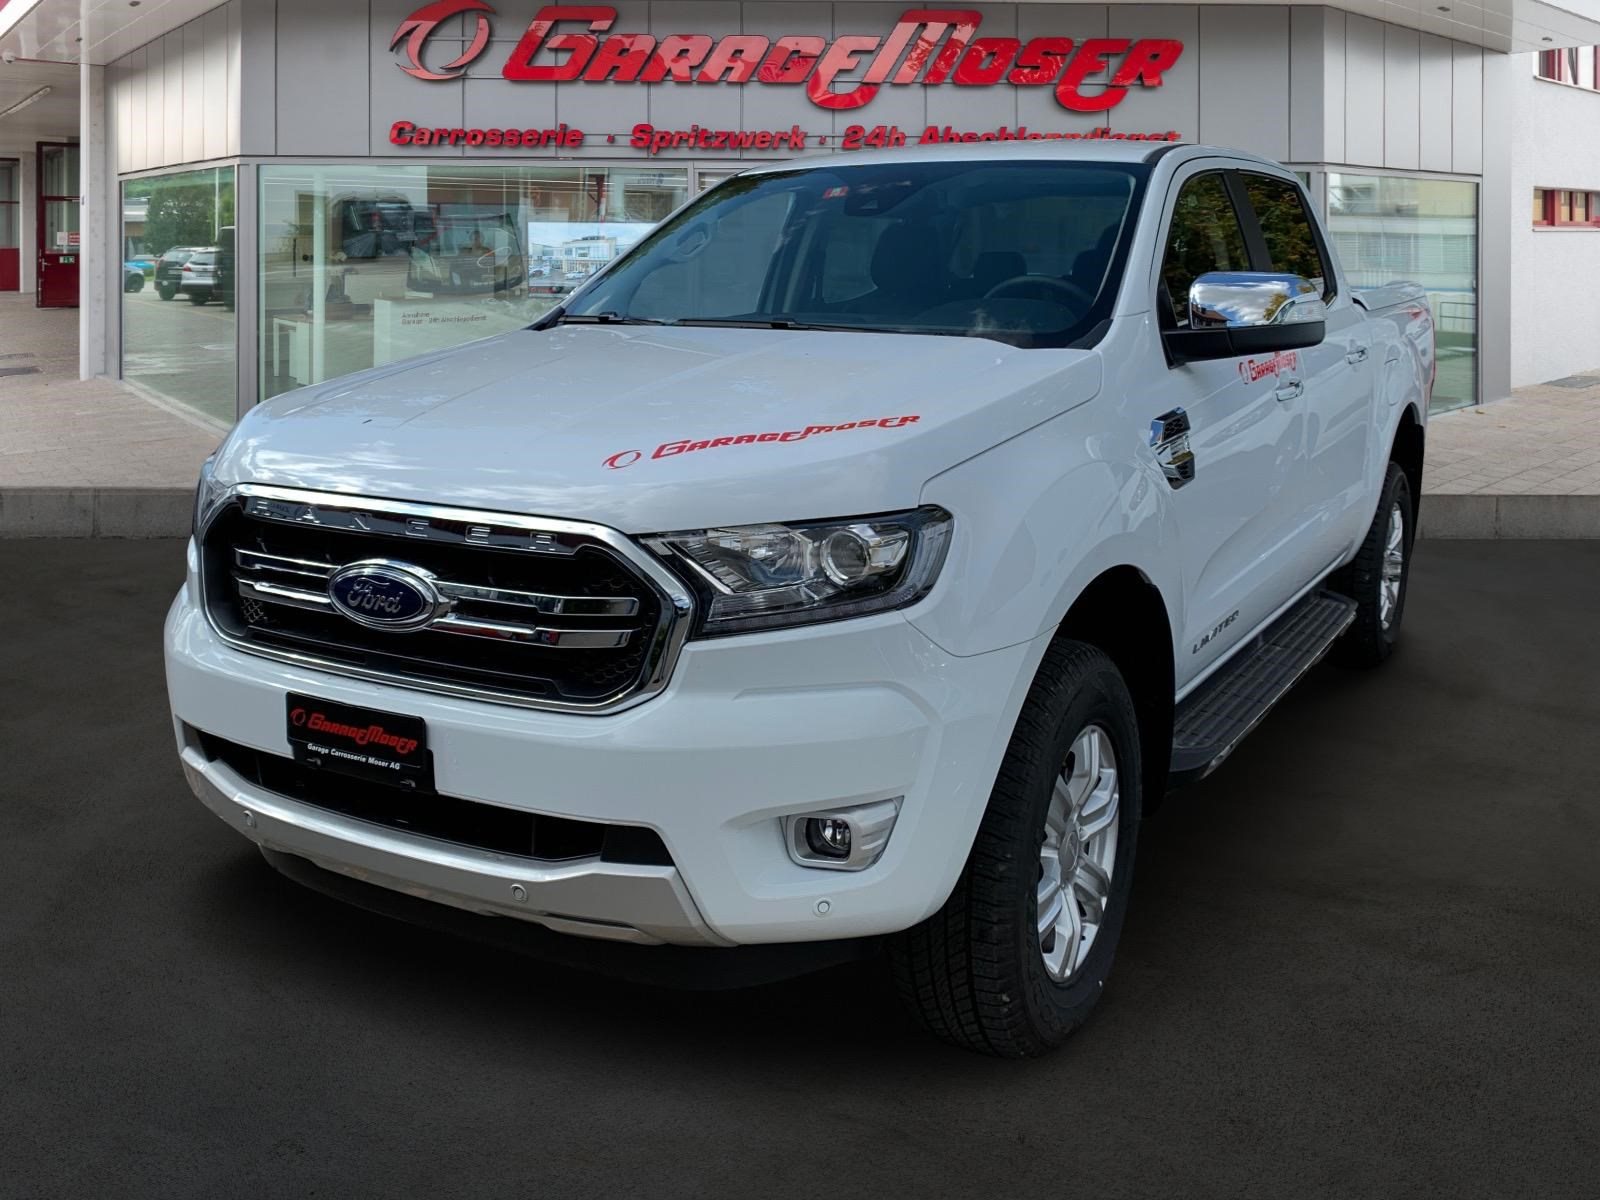 suv Ford Ranger DKab.Pick-up 2.0 EcoBlue 4x4 Limited